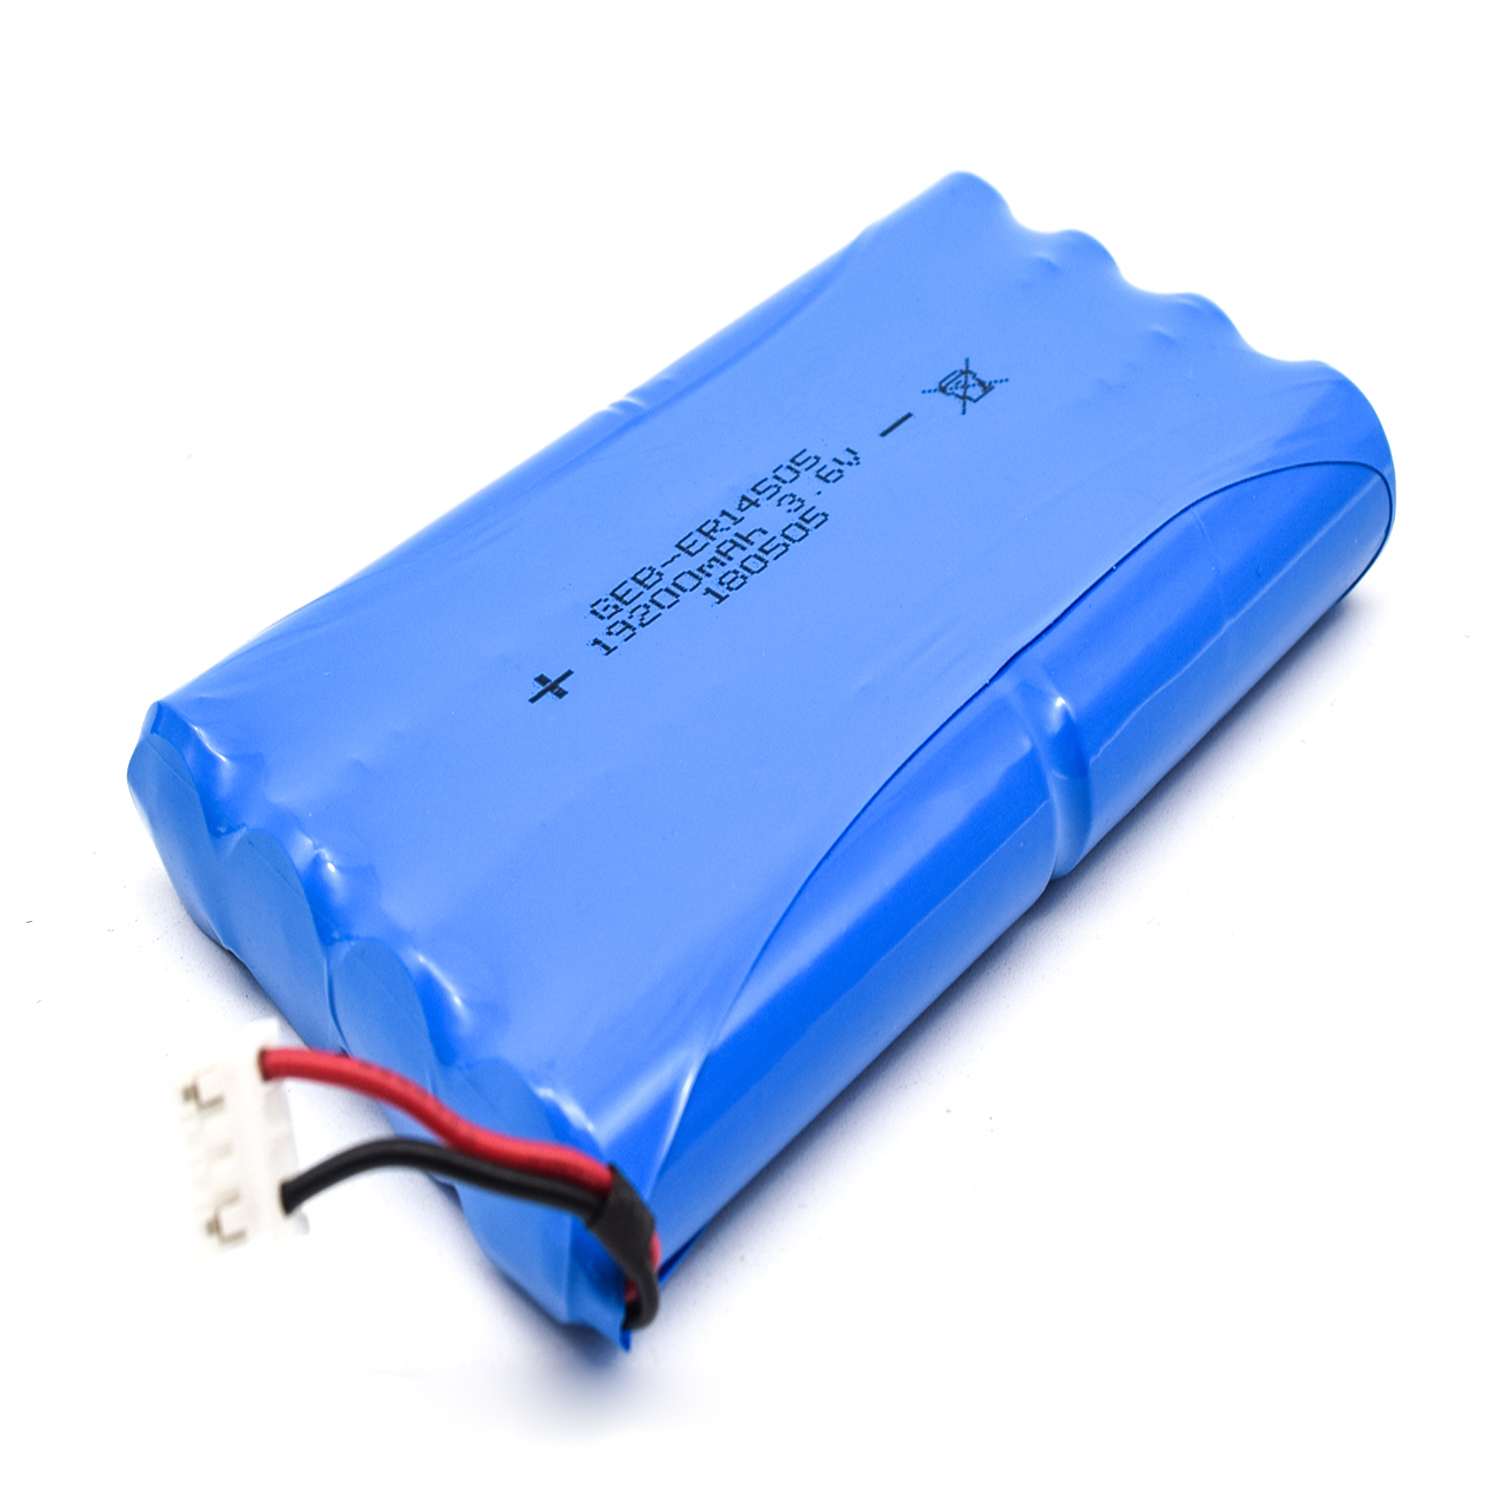 Non-rechargeable Li-Socl2 battery ER14505 AA size 1S3P Lithium Thionyl Chloride 3.6V 8100mAh